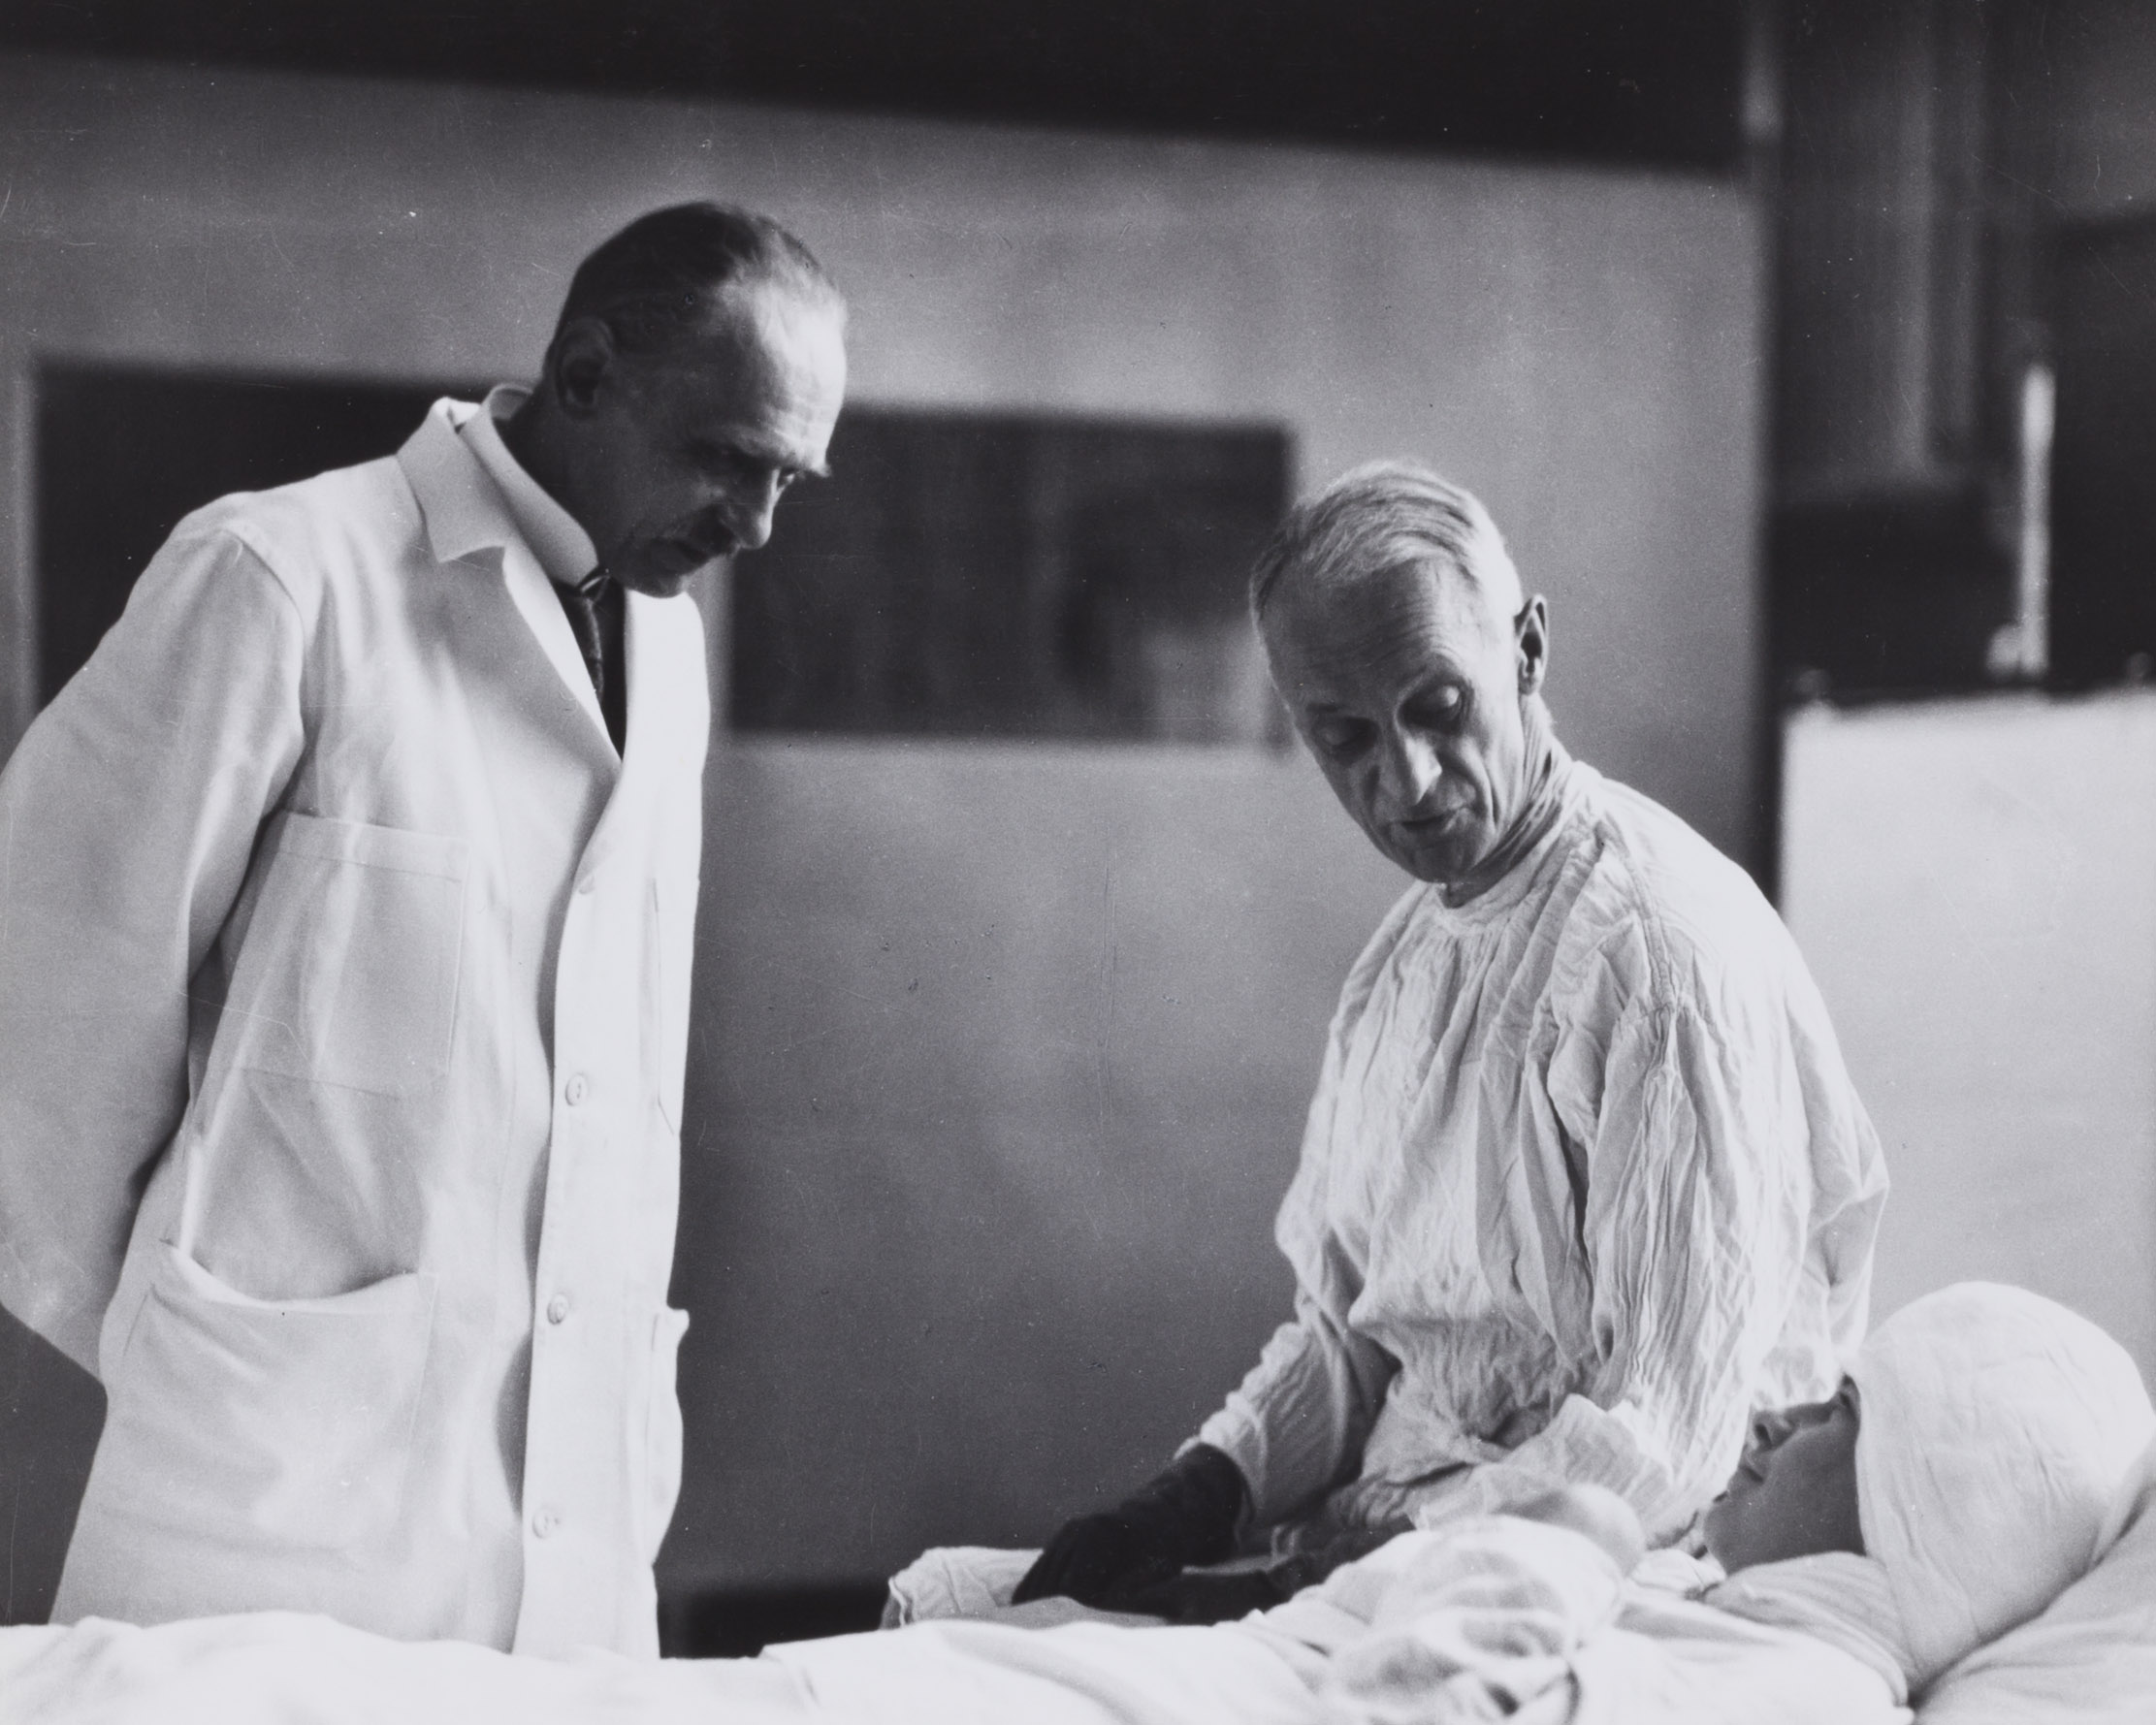 Dr. Harvey Cushing with patient